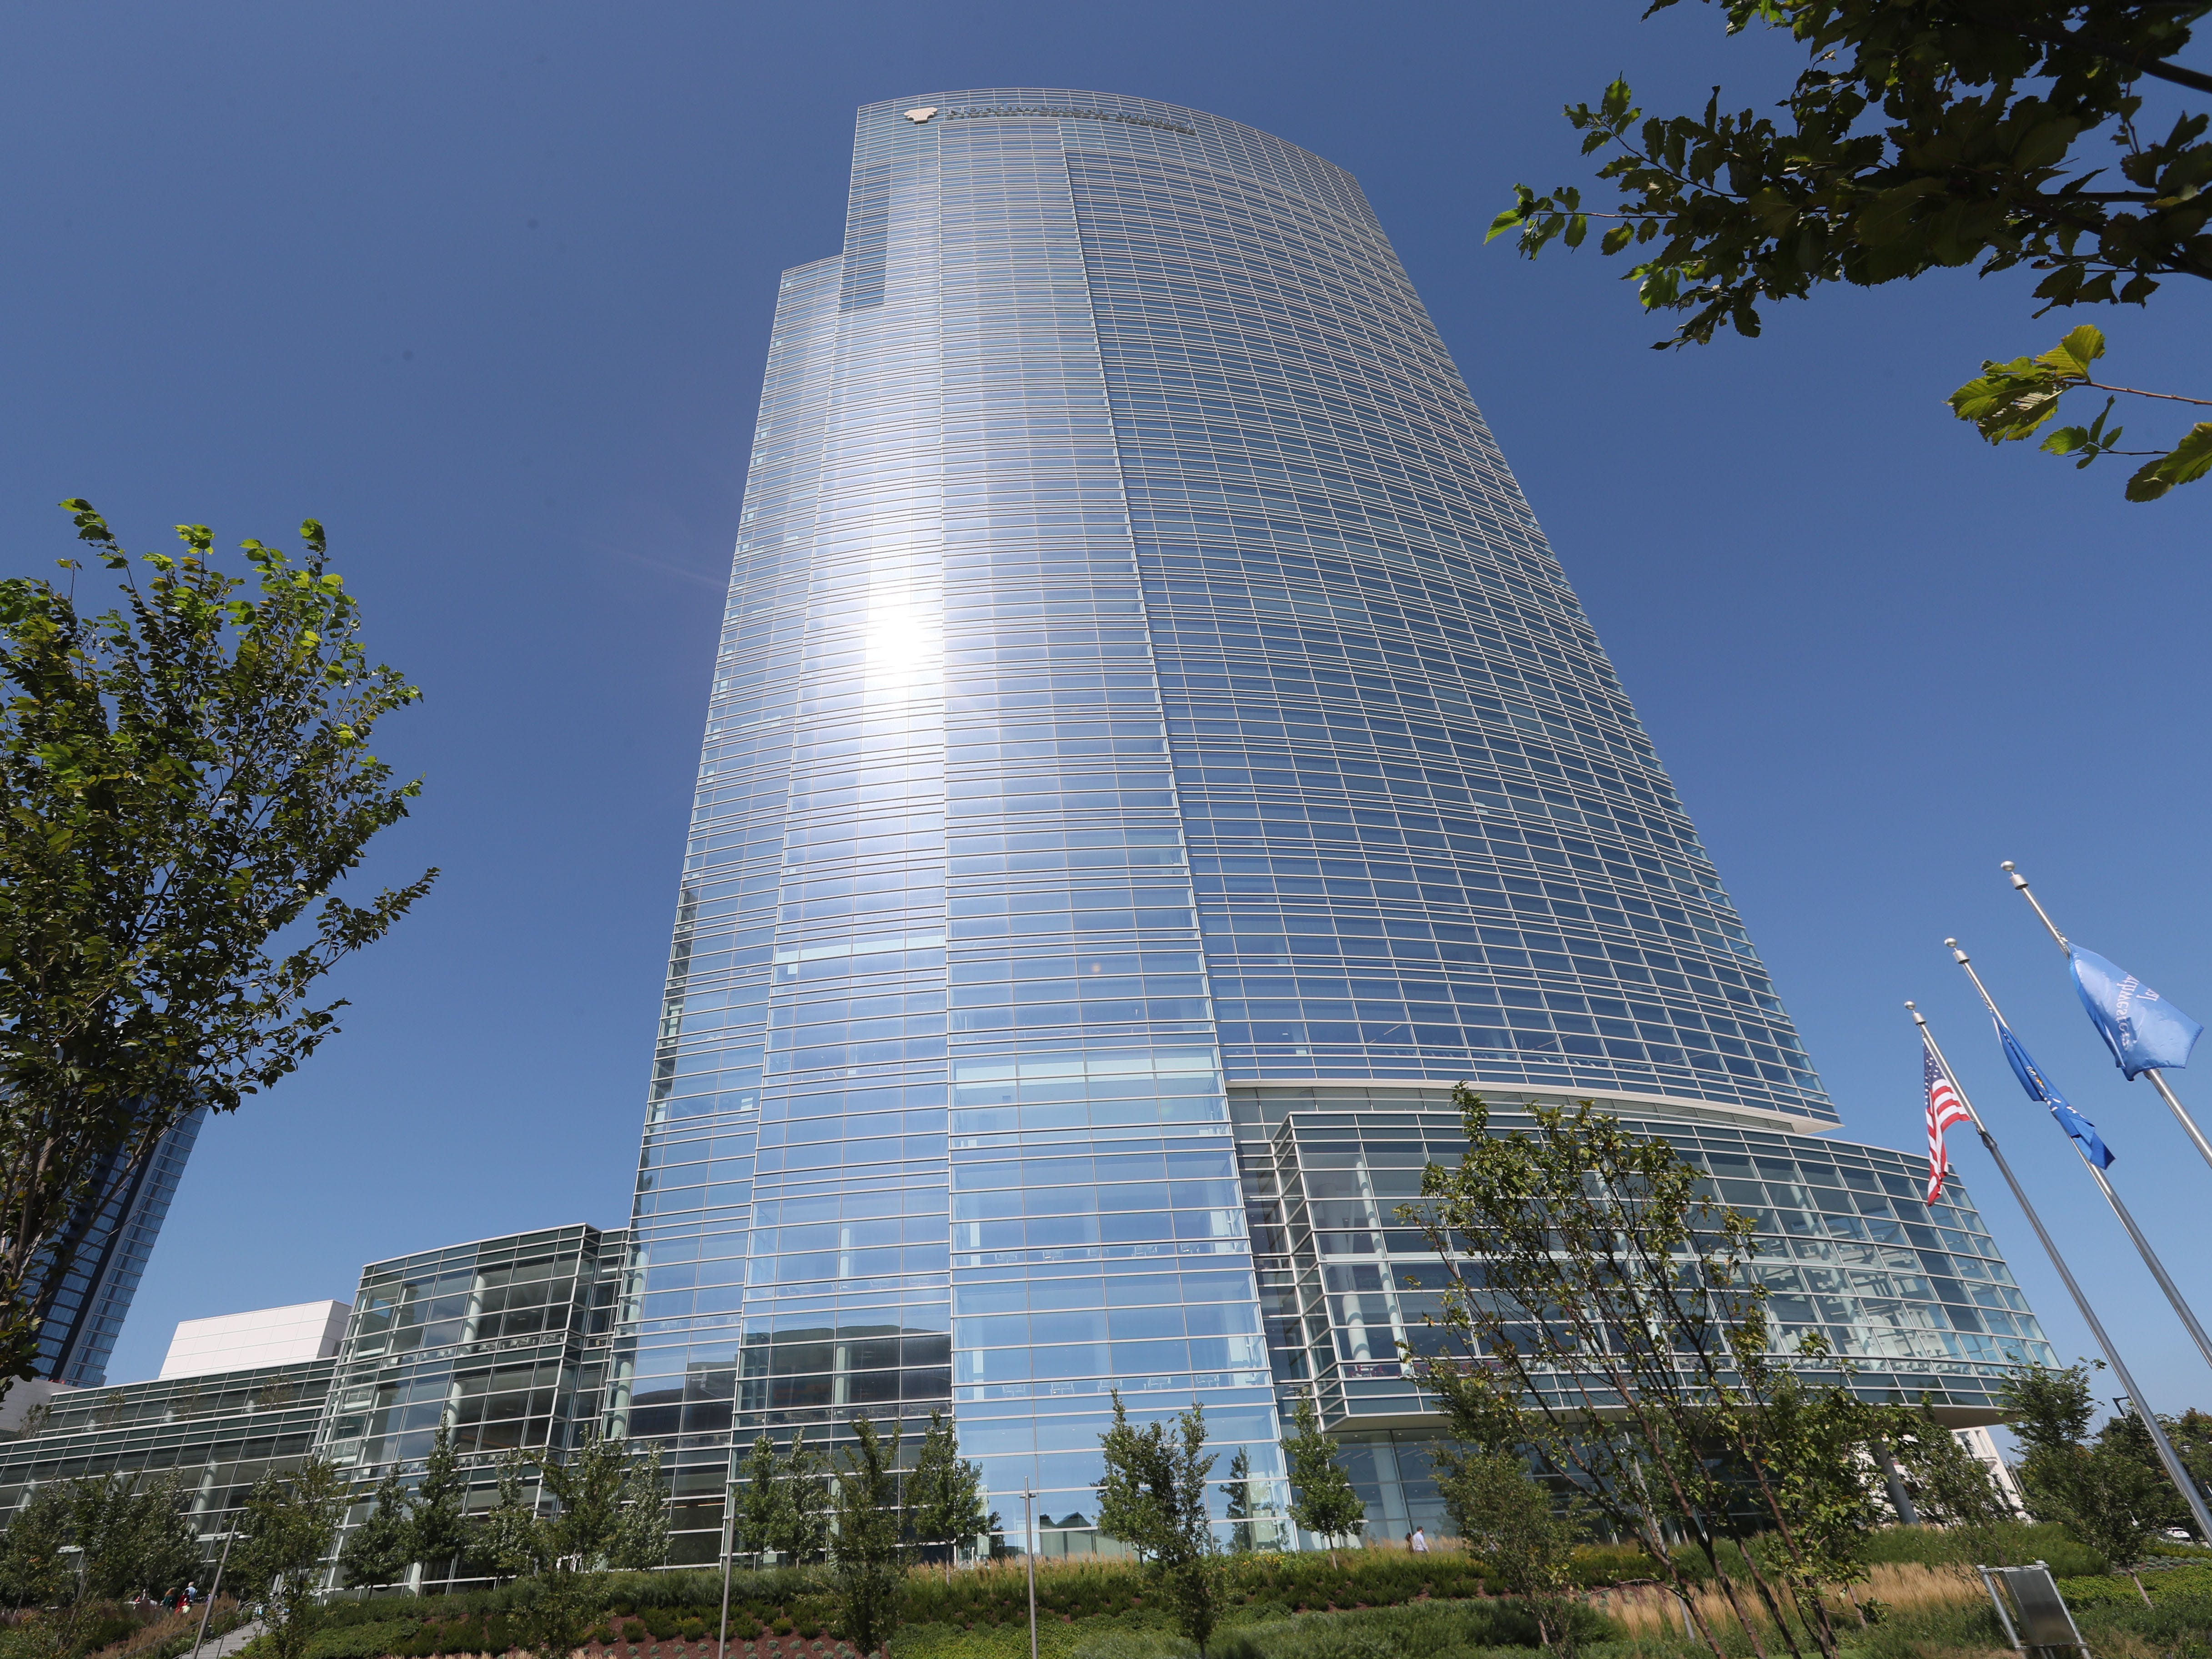 The new Northwestern Mutual Tower and Commons took part in Doors Open Milwaukee 2018.